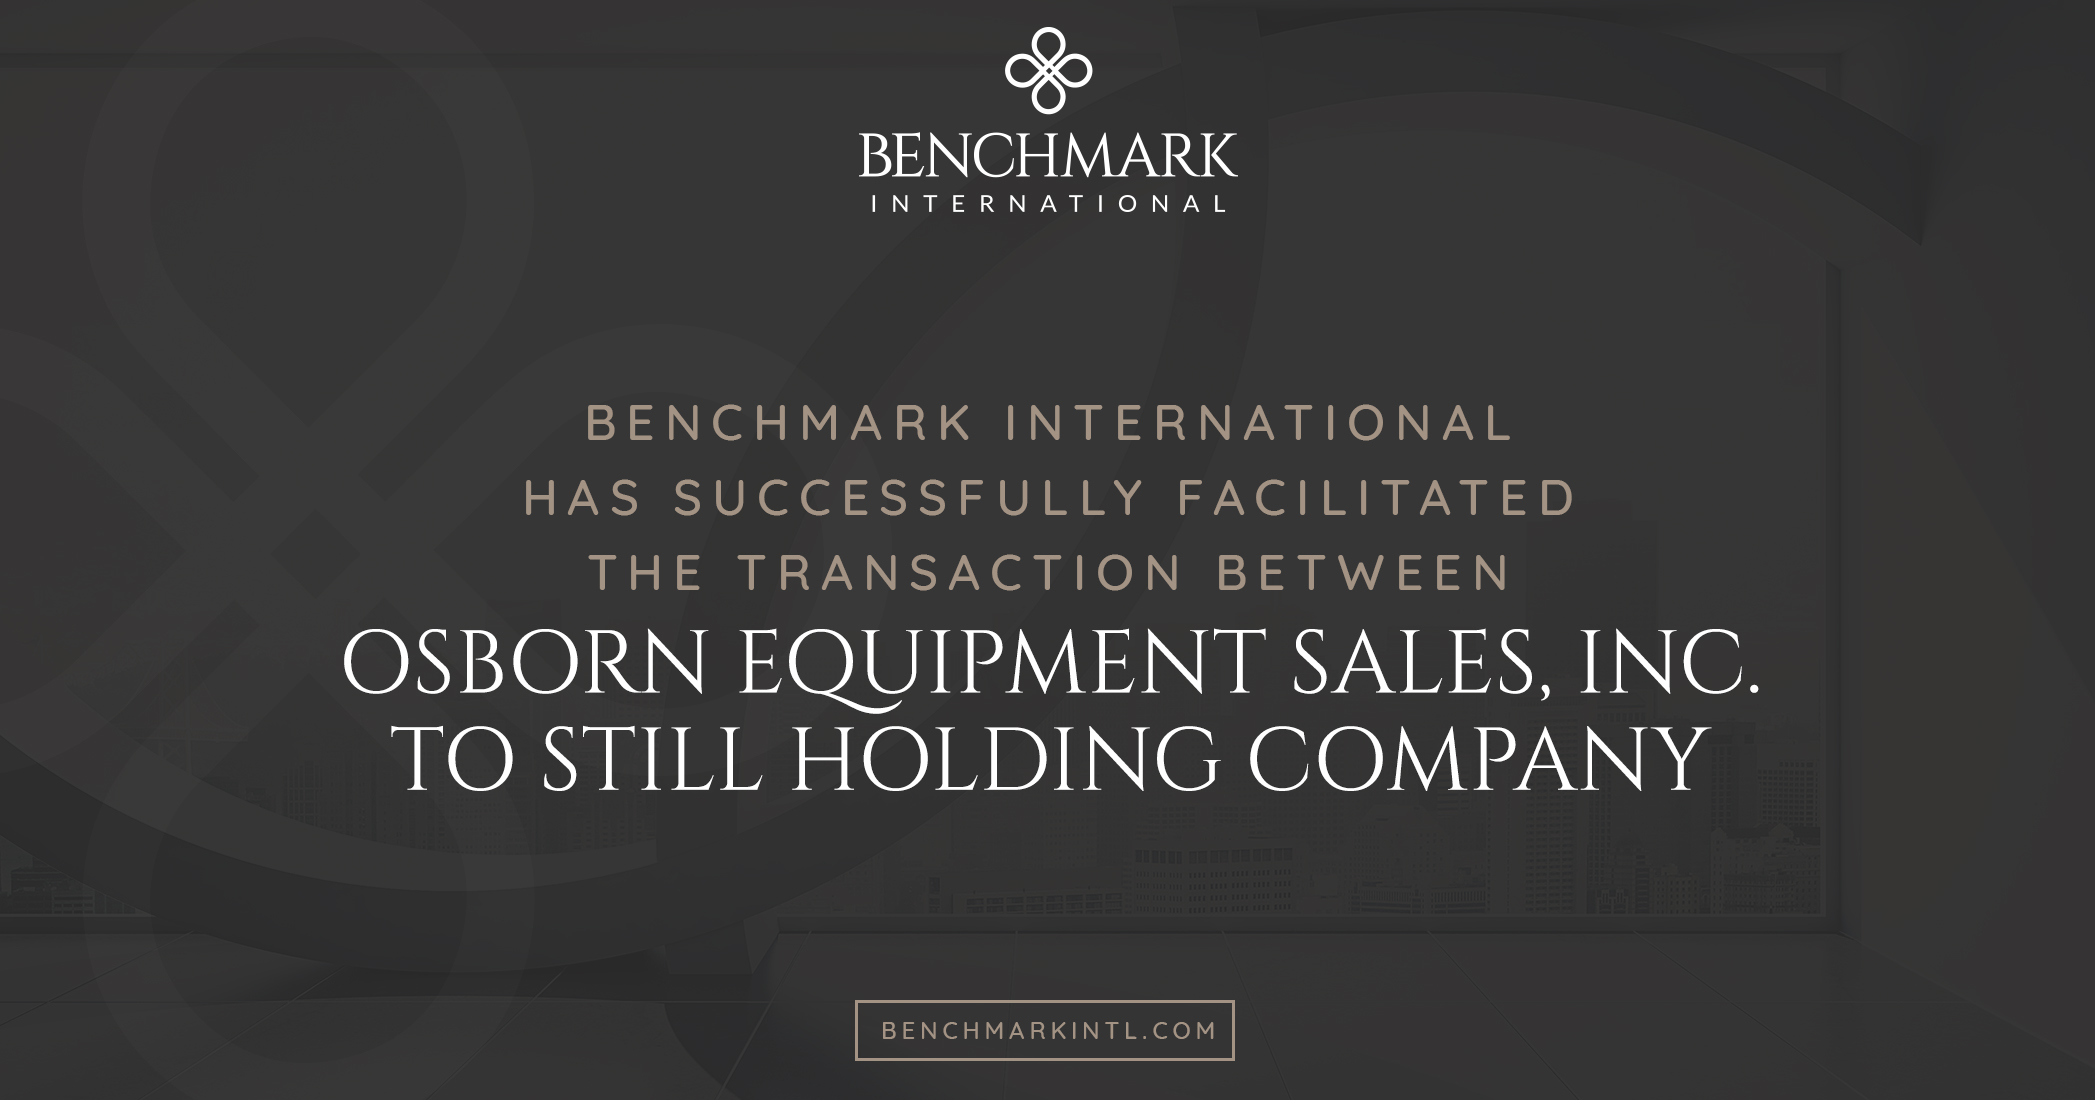 Benchmark International Successfully Facilitated the Transaction of Osborn Equipment Sales, Inc. to Still Holding Company